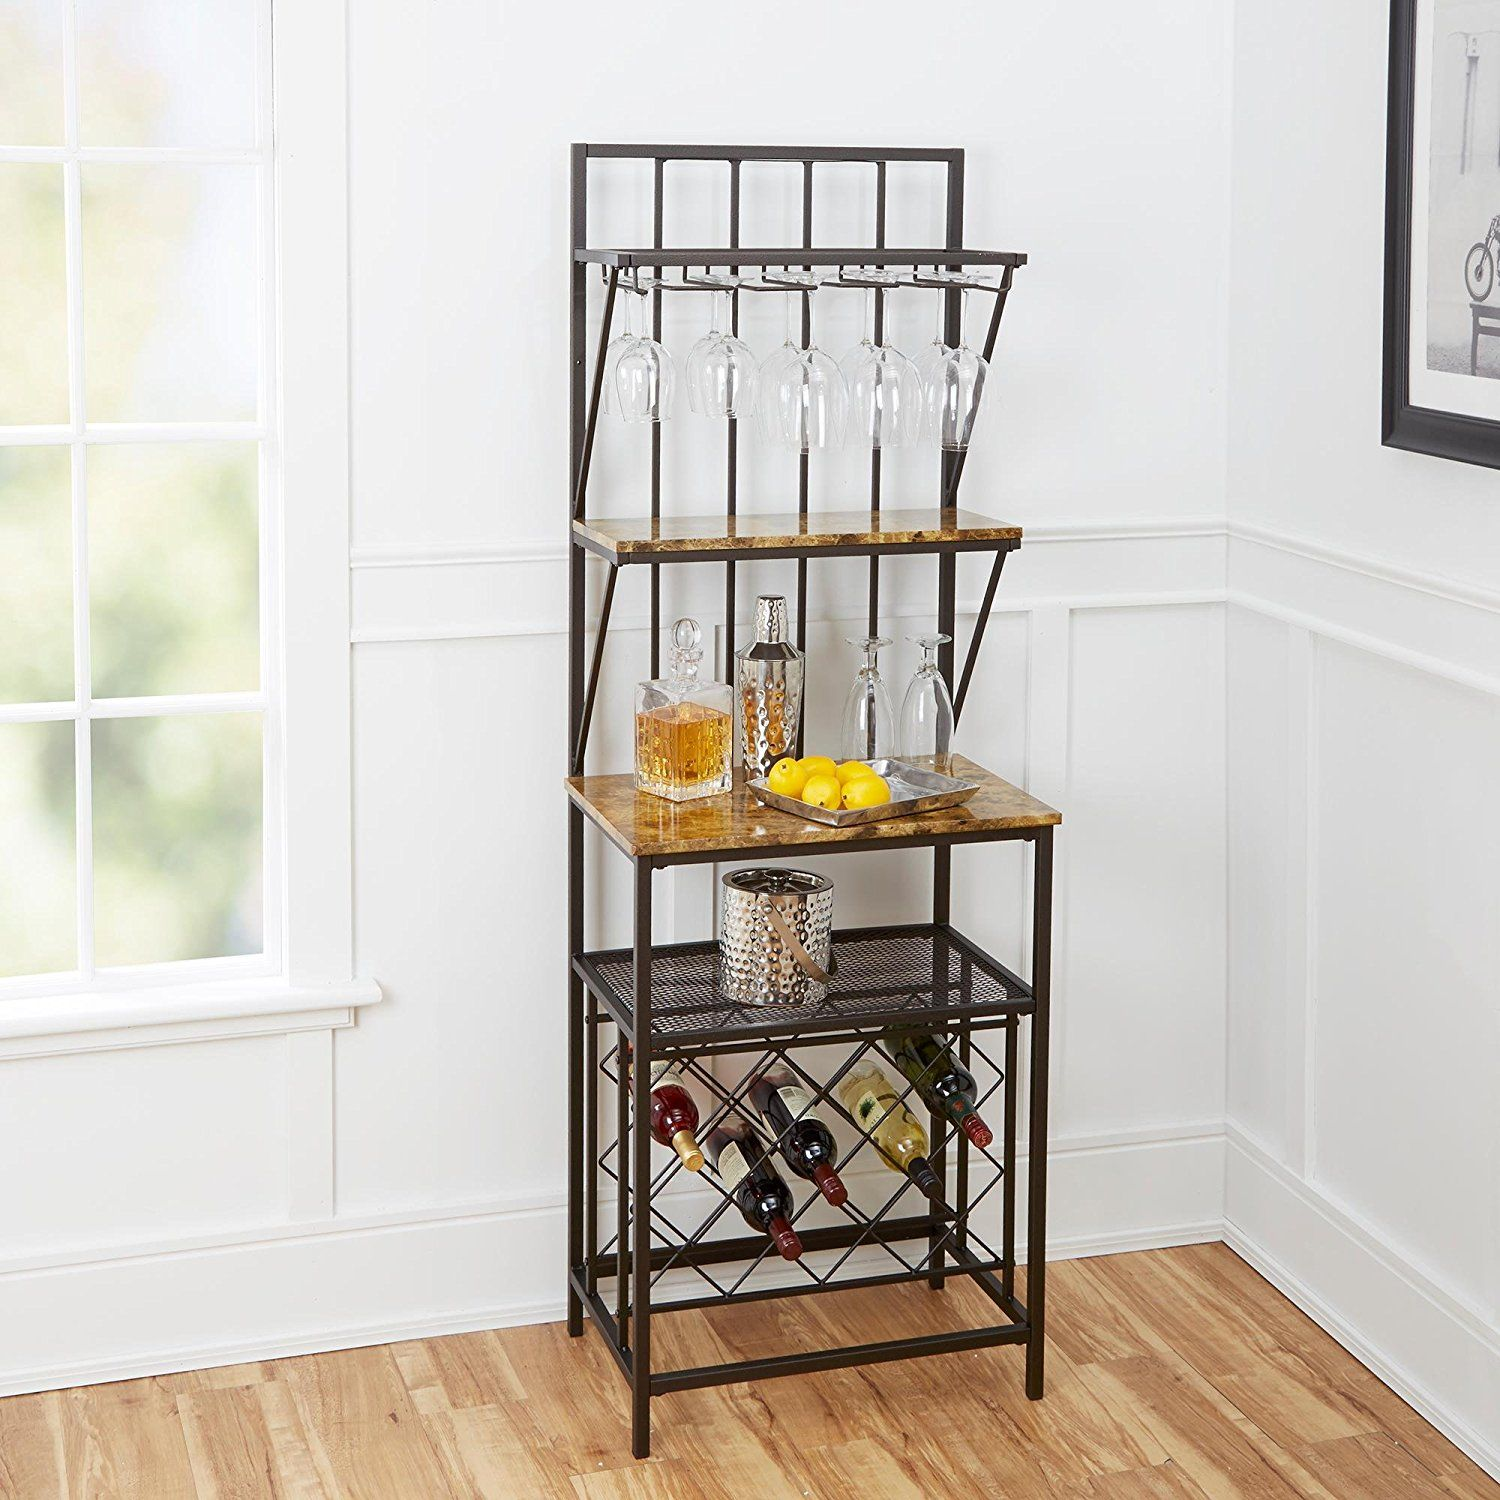 superb Bakers Rack Wine Part - 15: Amazon.com - Home Indoor Furniture Faux Marble Shelf Bakers Rack Wine  Bottle Kitchen Stand Metal Wood With Wine Bottle Storage antique brass  built-in glass ...